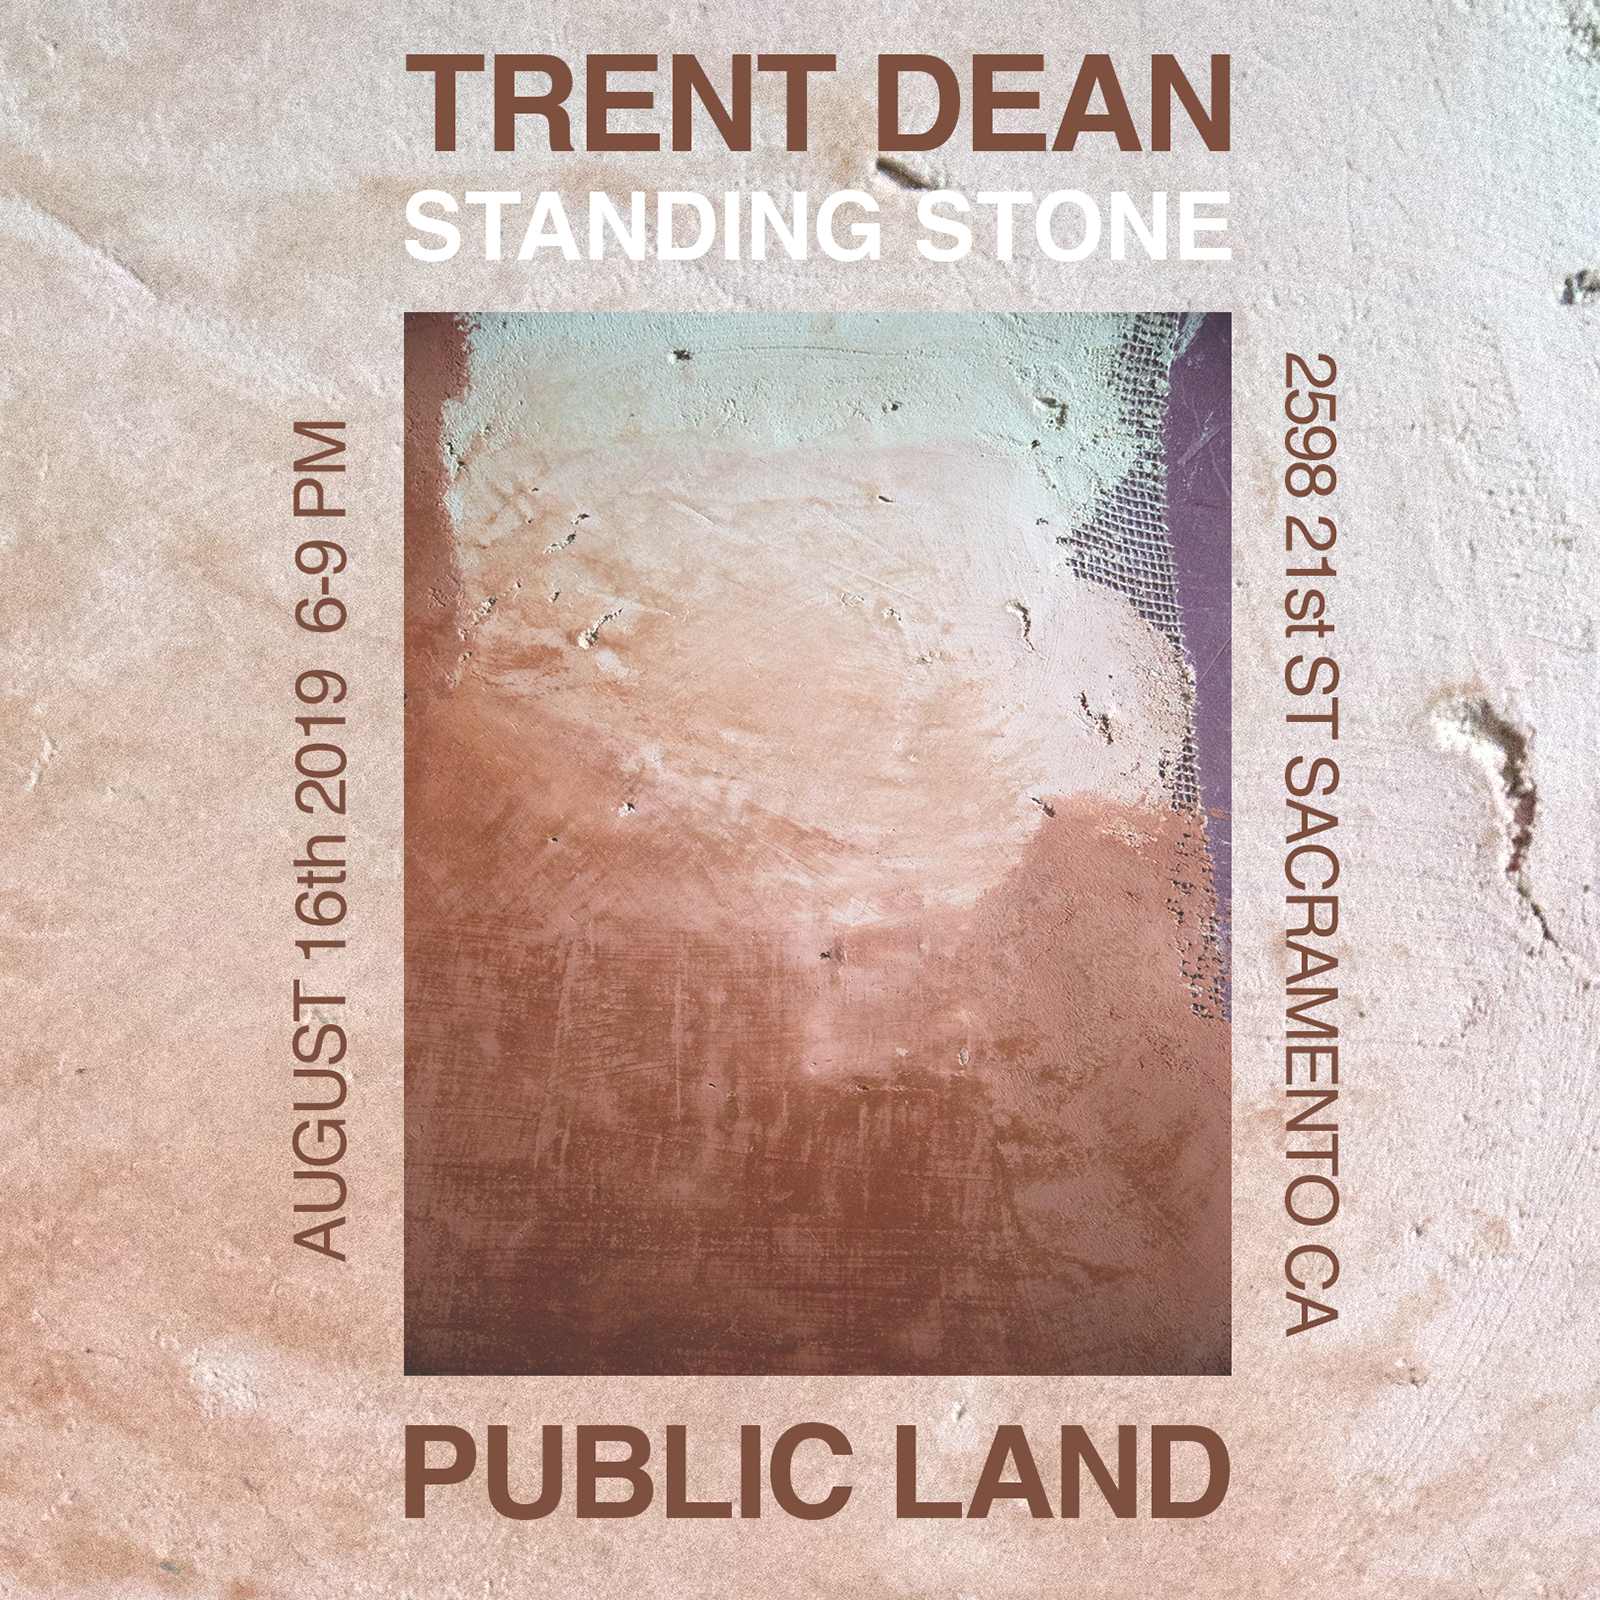 Trent Dean art exhibition at Public Land in Sacramento